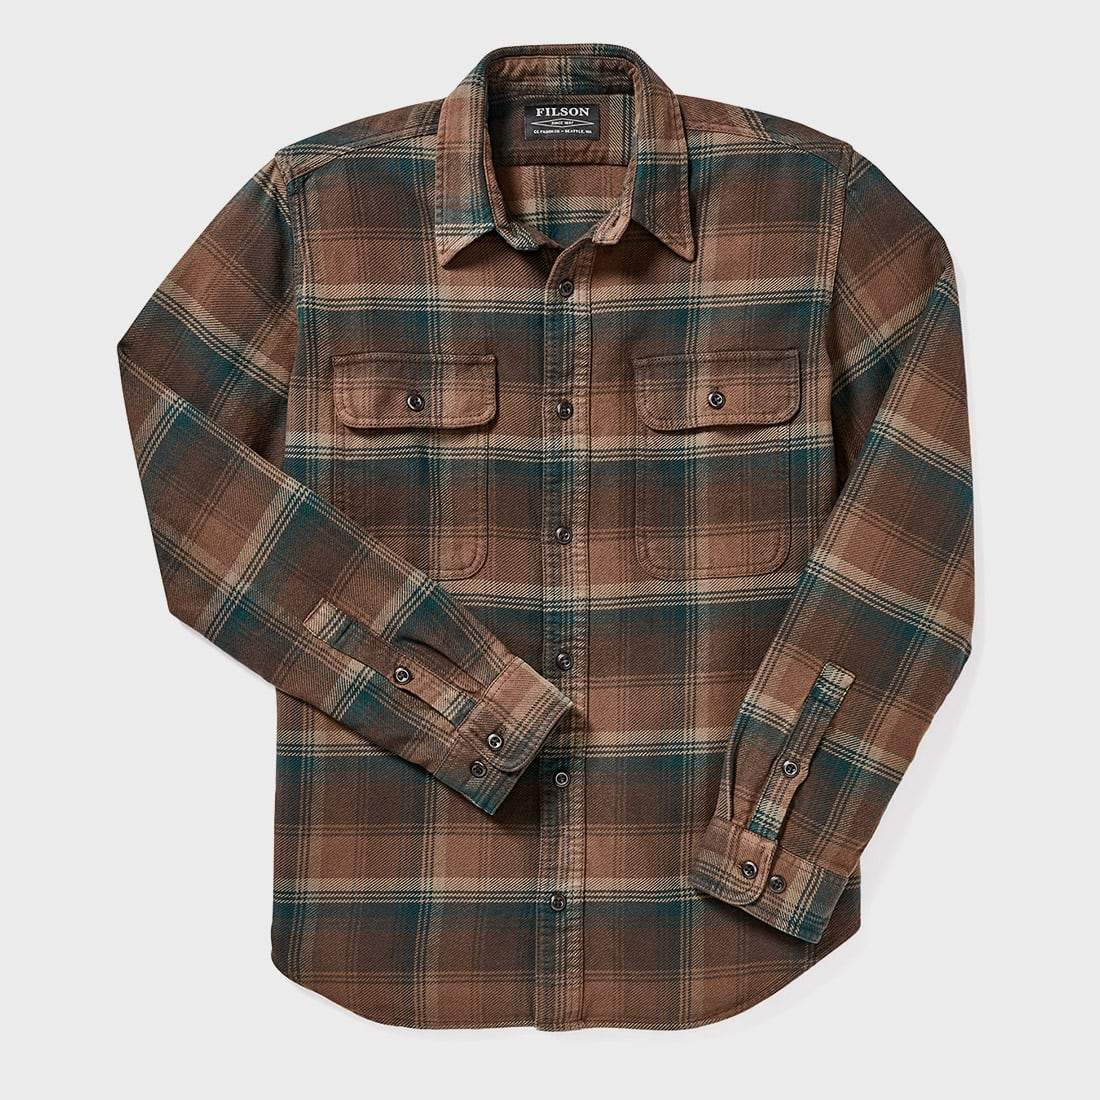 Filson Vintage Flannel Work Shirt Chocolate/ Green/ Tan Plaid